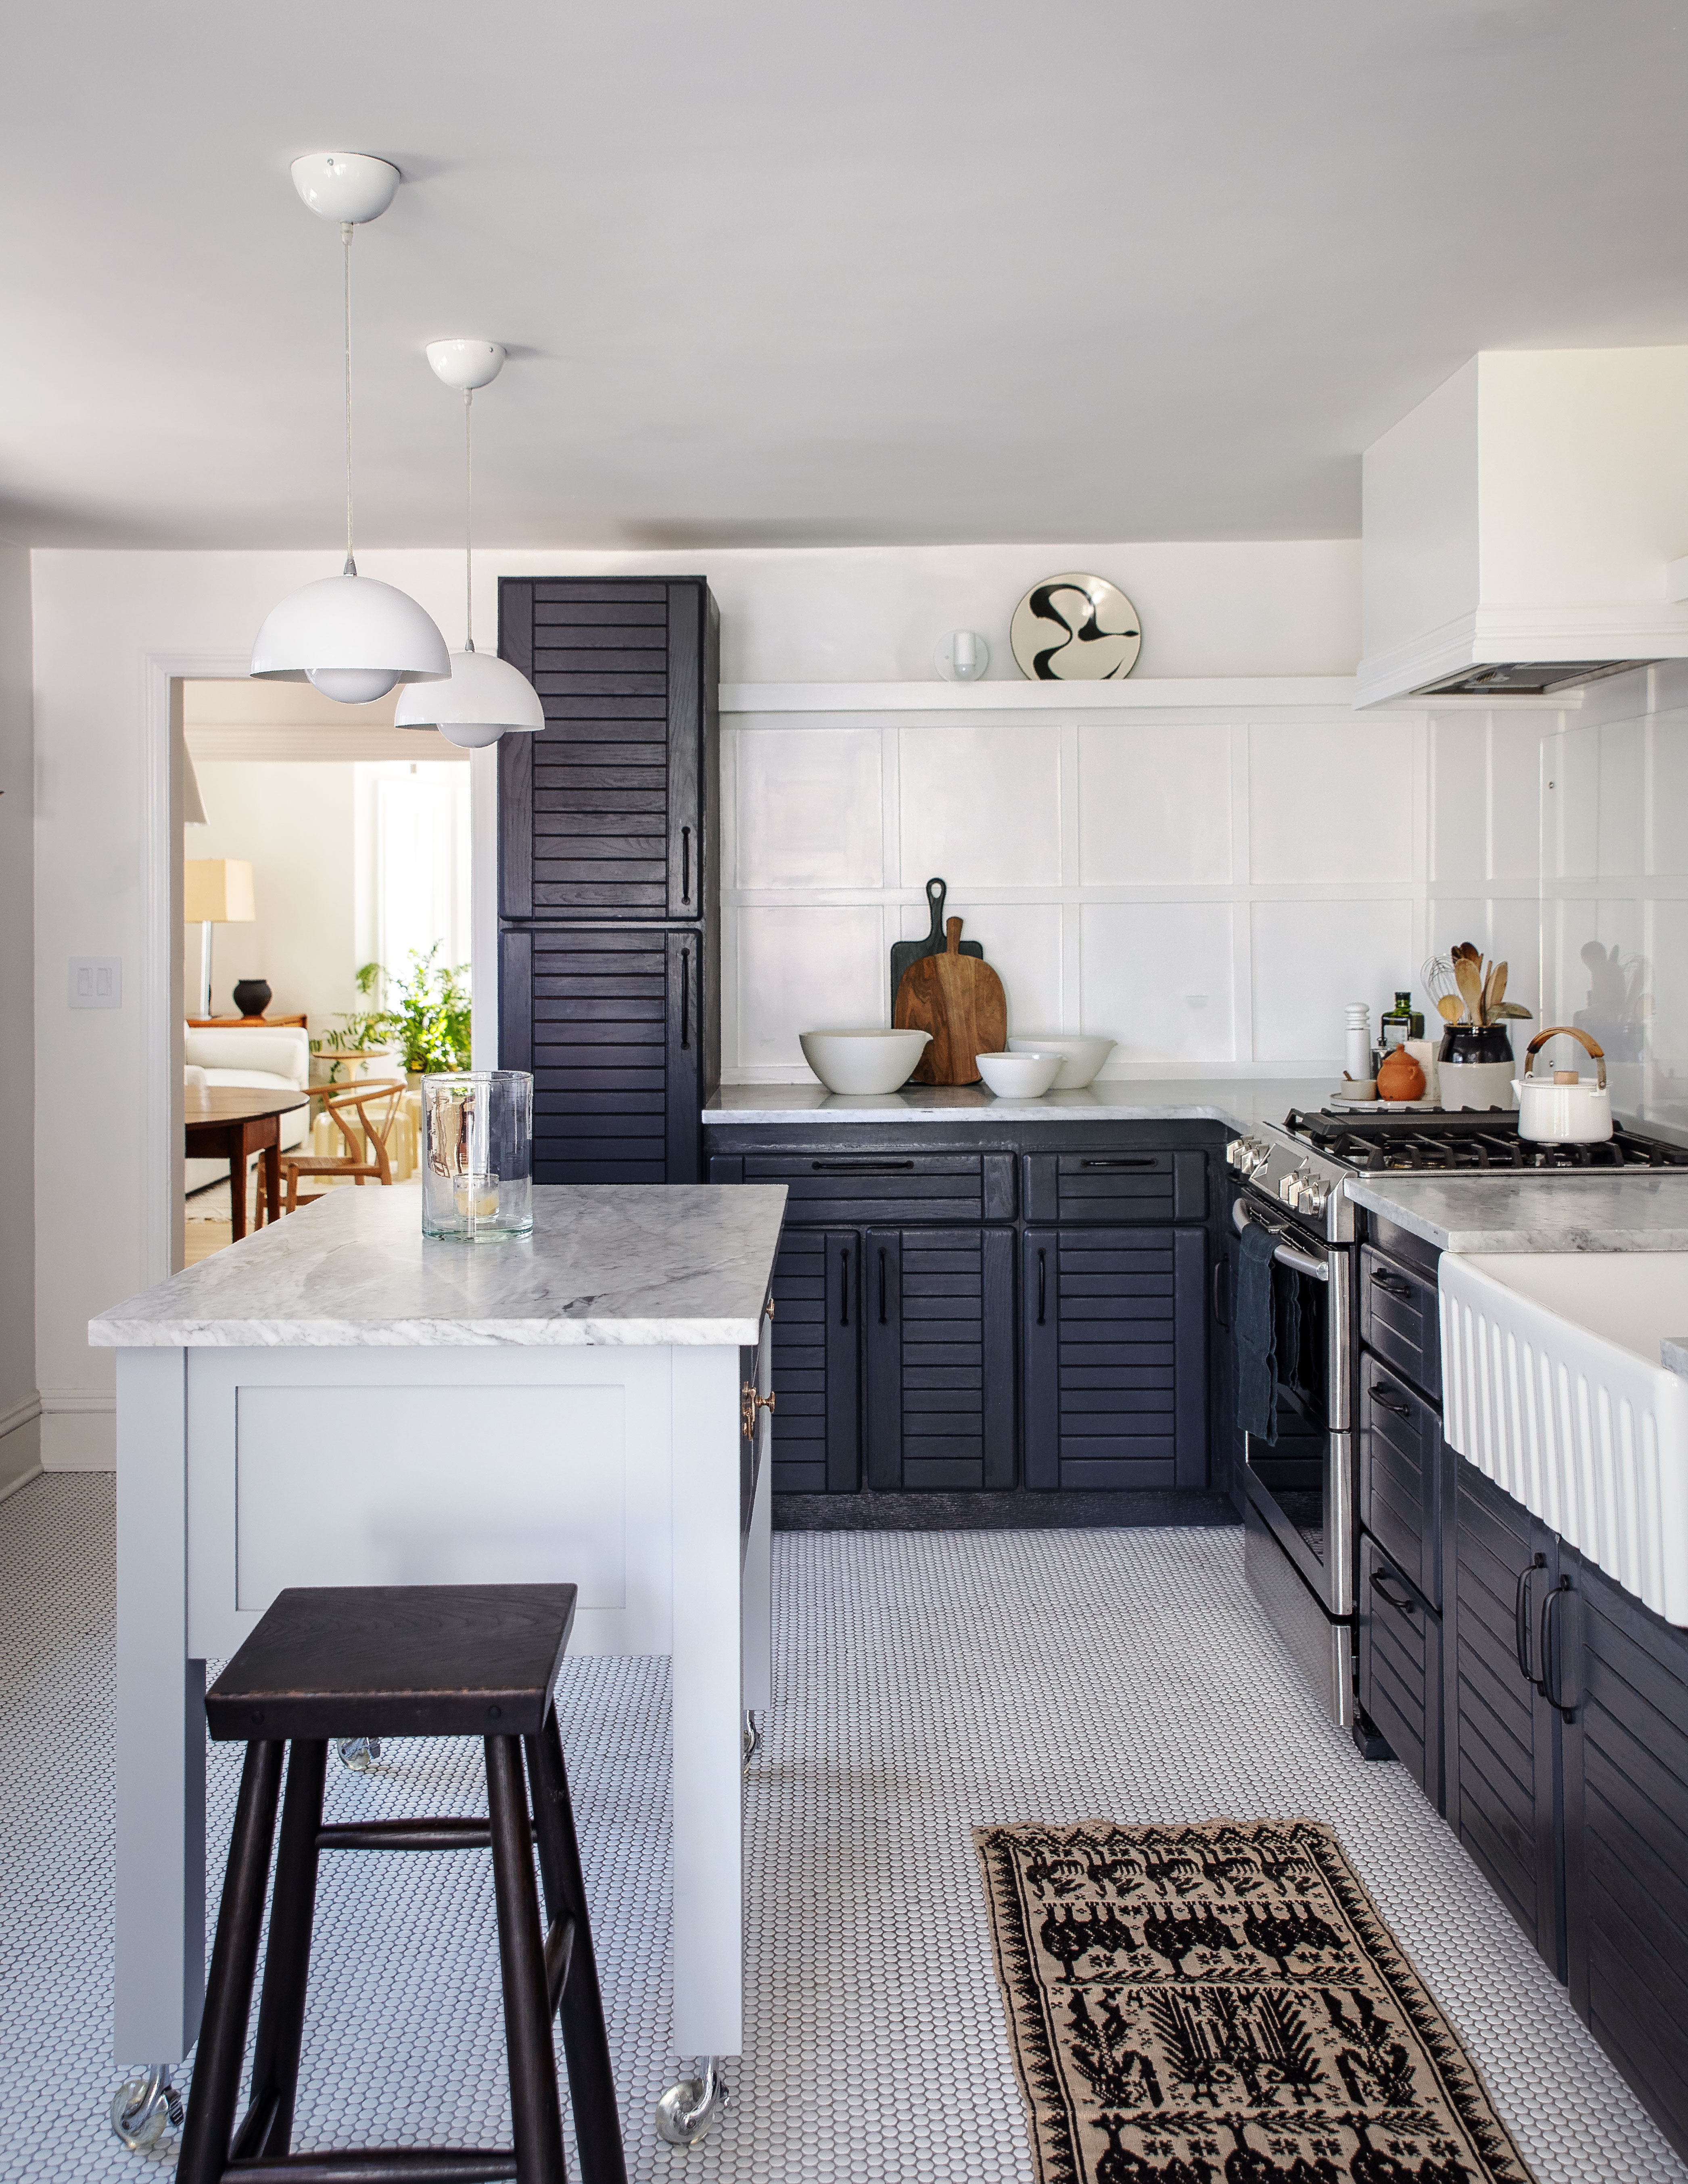 the white and dark gray kitchen is compact (just \280 square feet) but designed 9